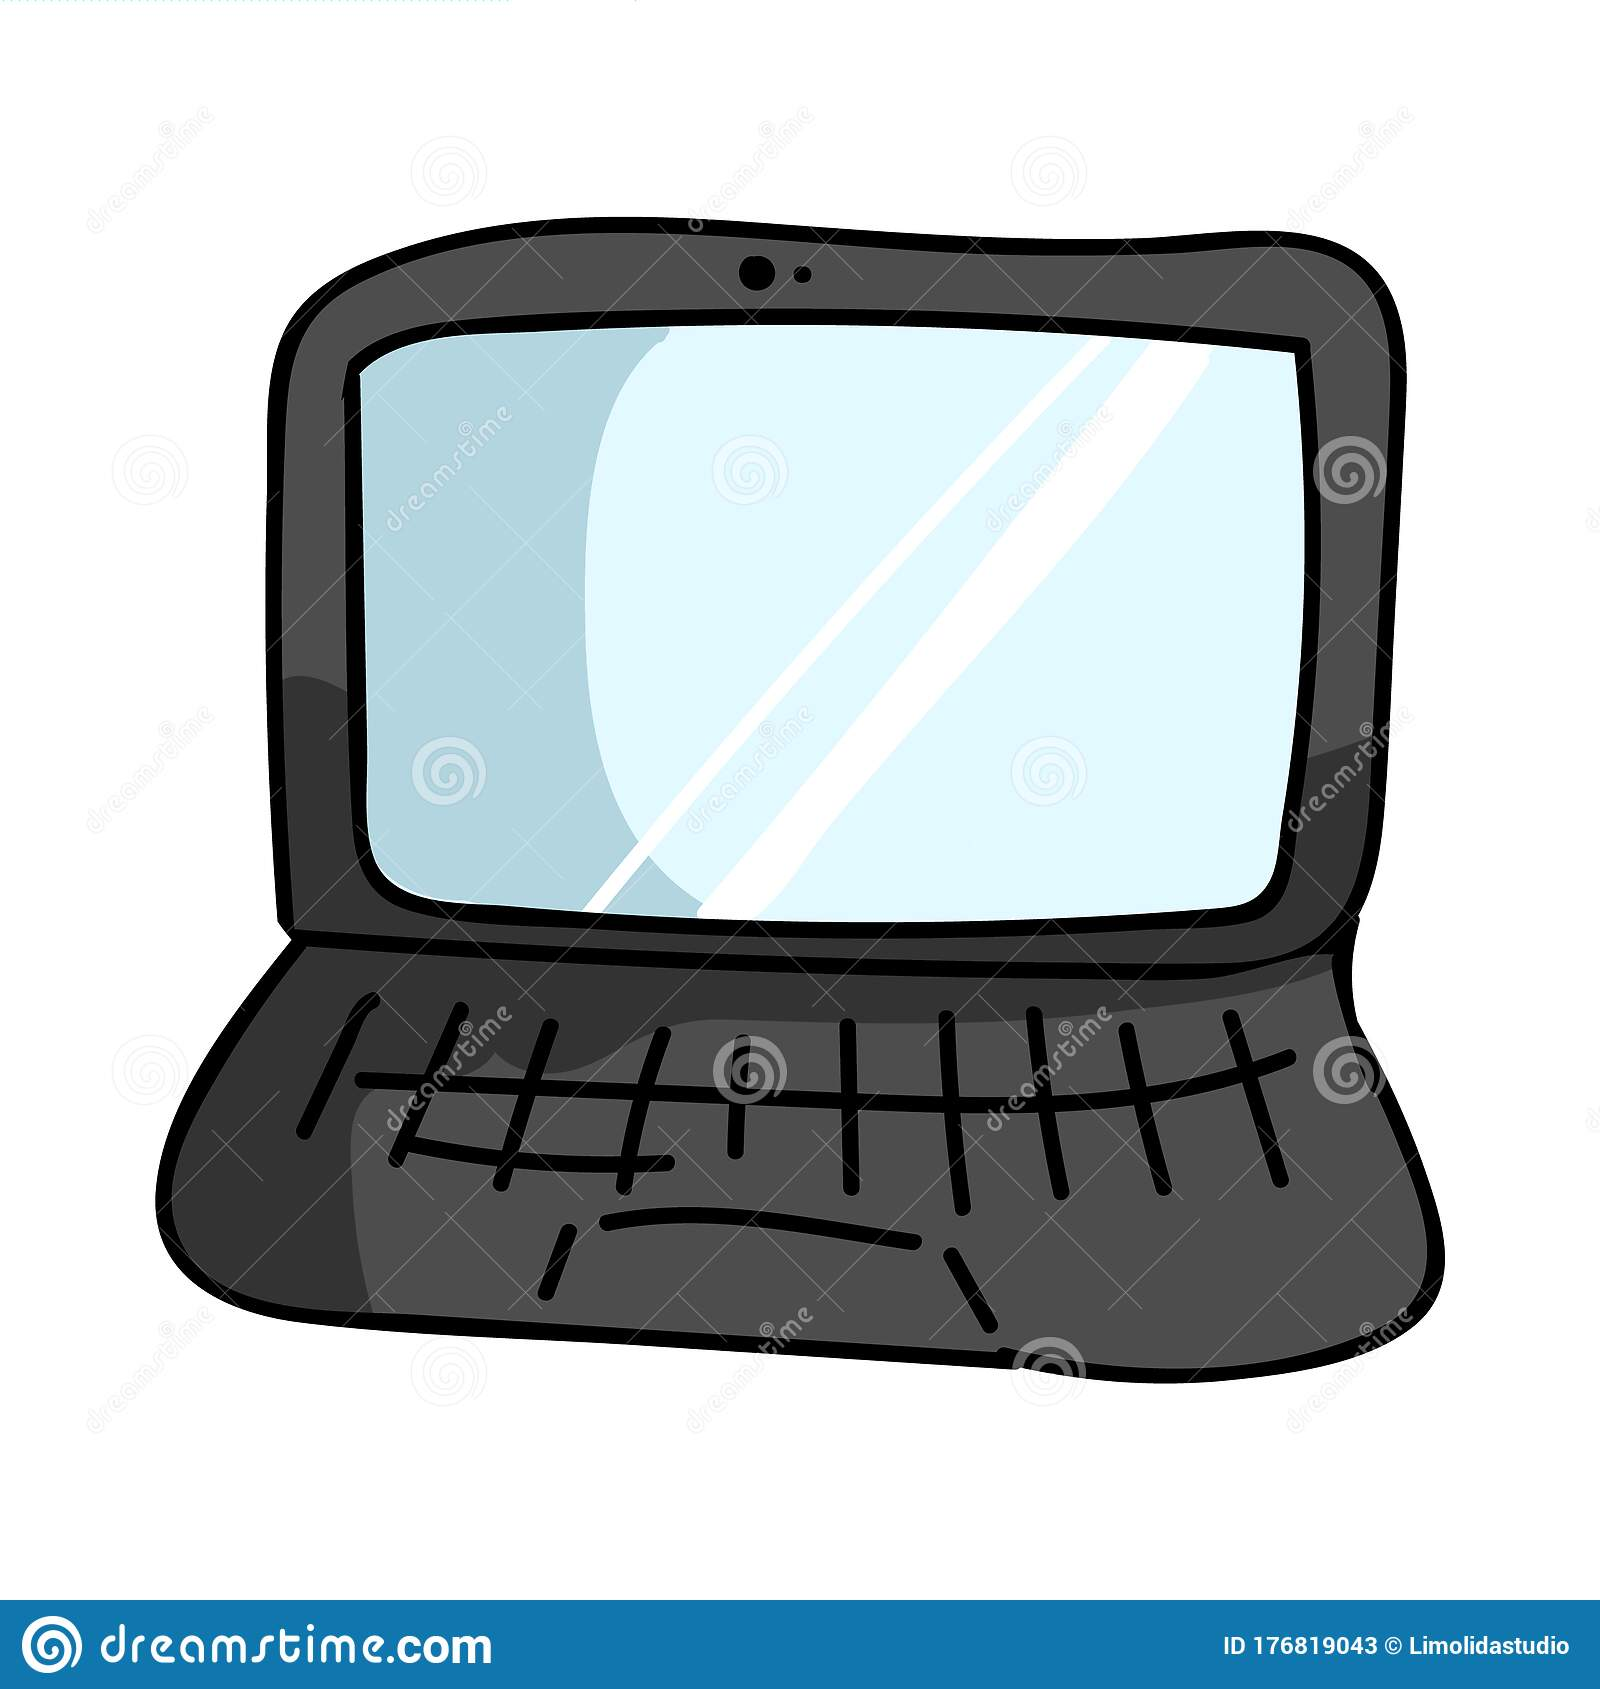 Cute Cartoon Laptop With Keyboard For Communication